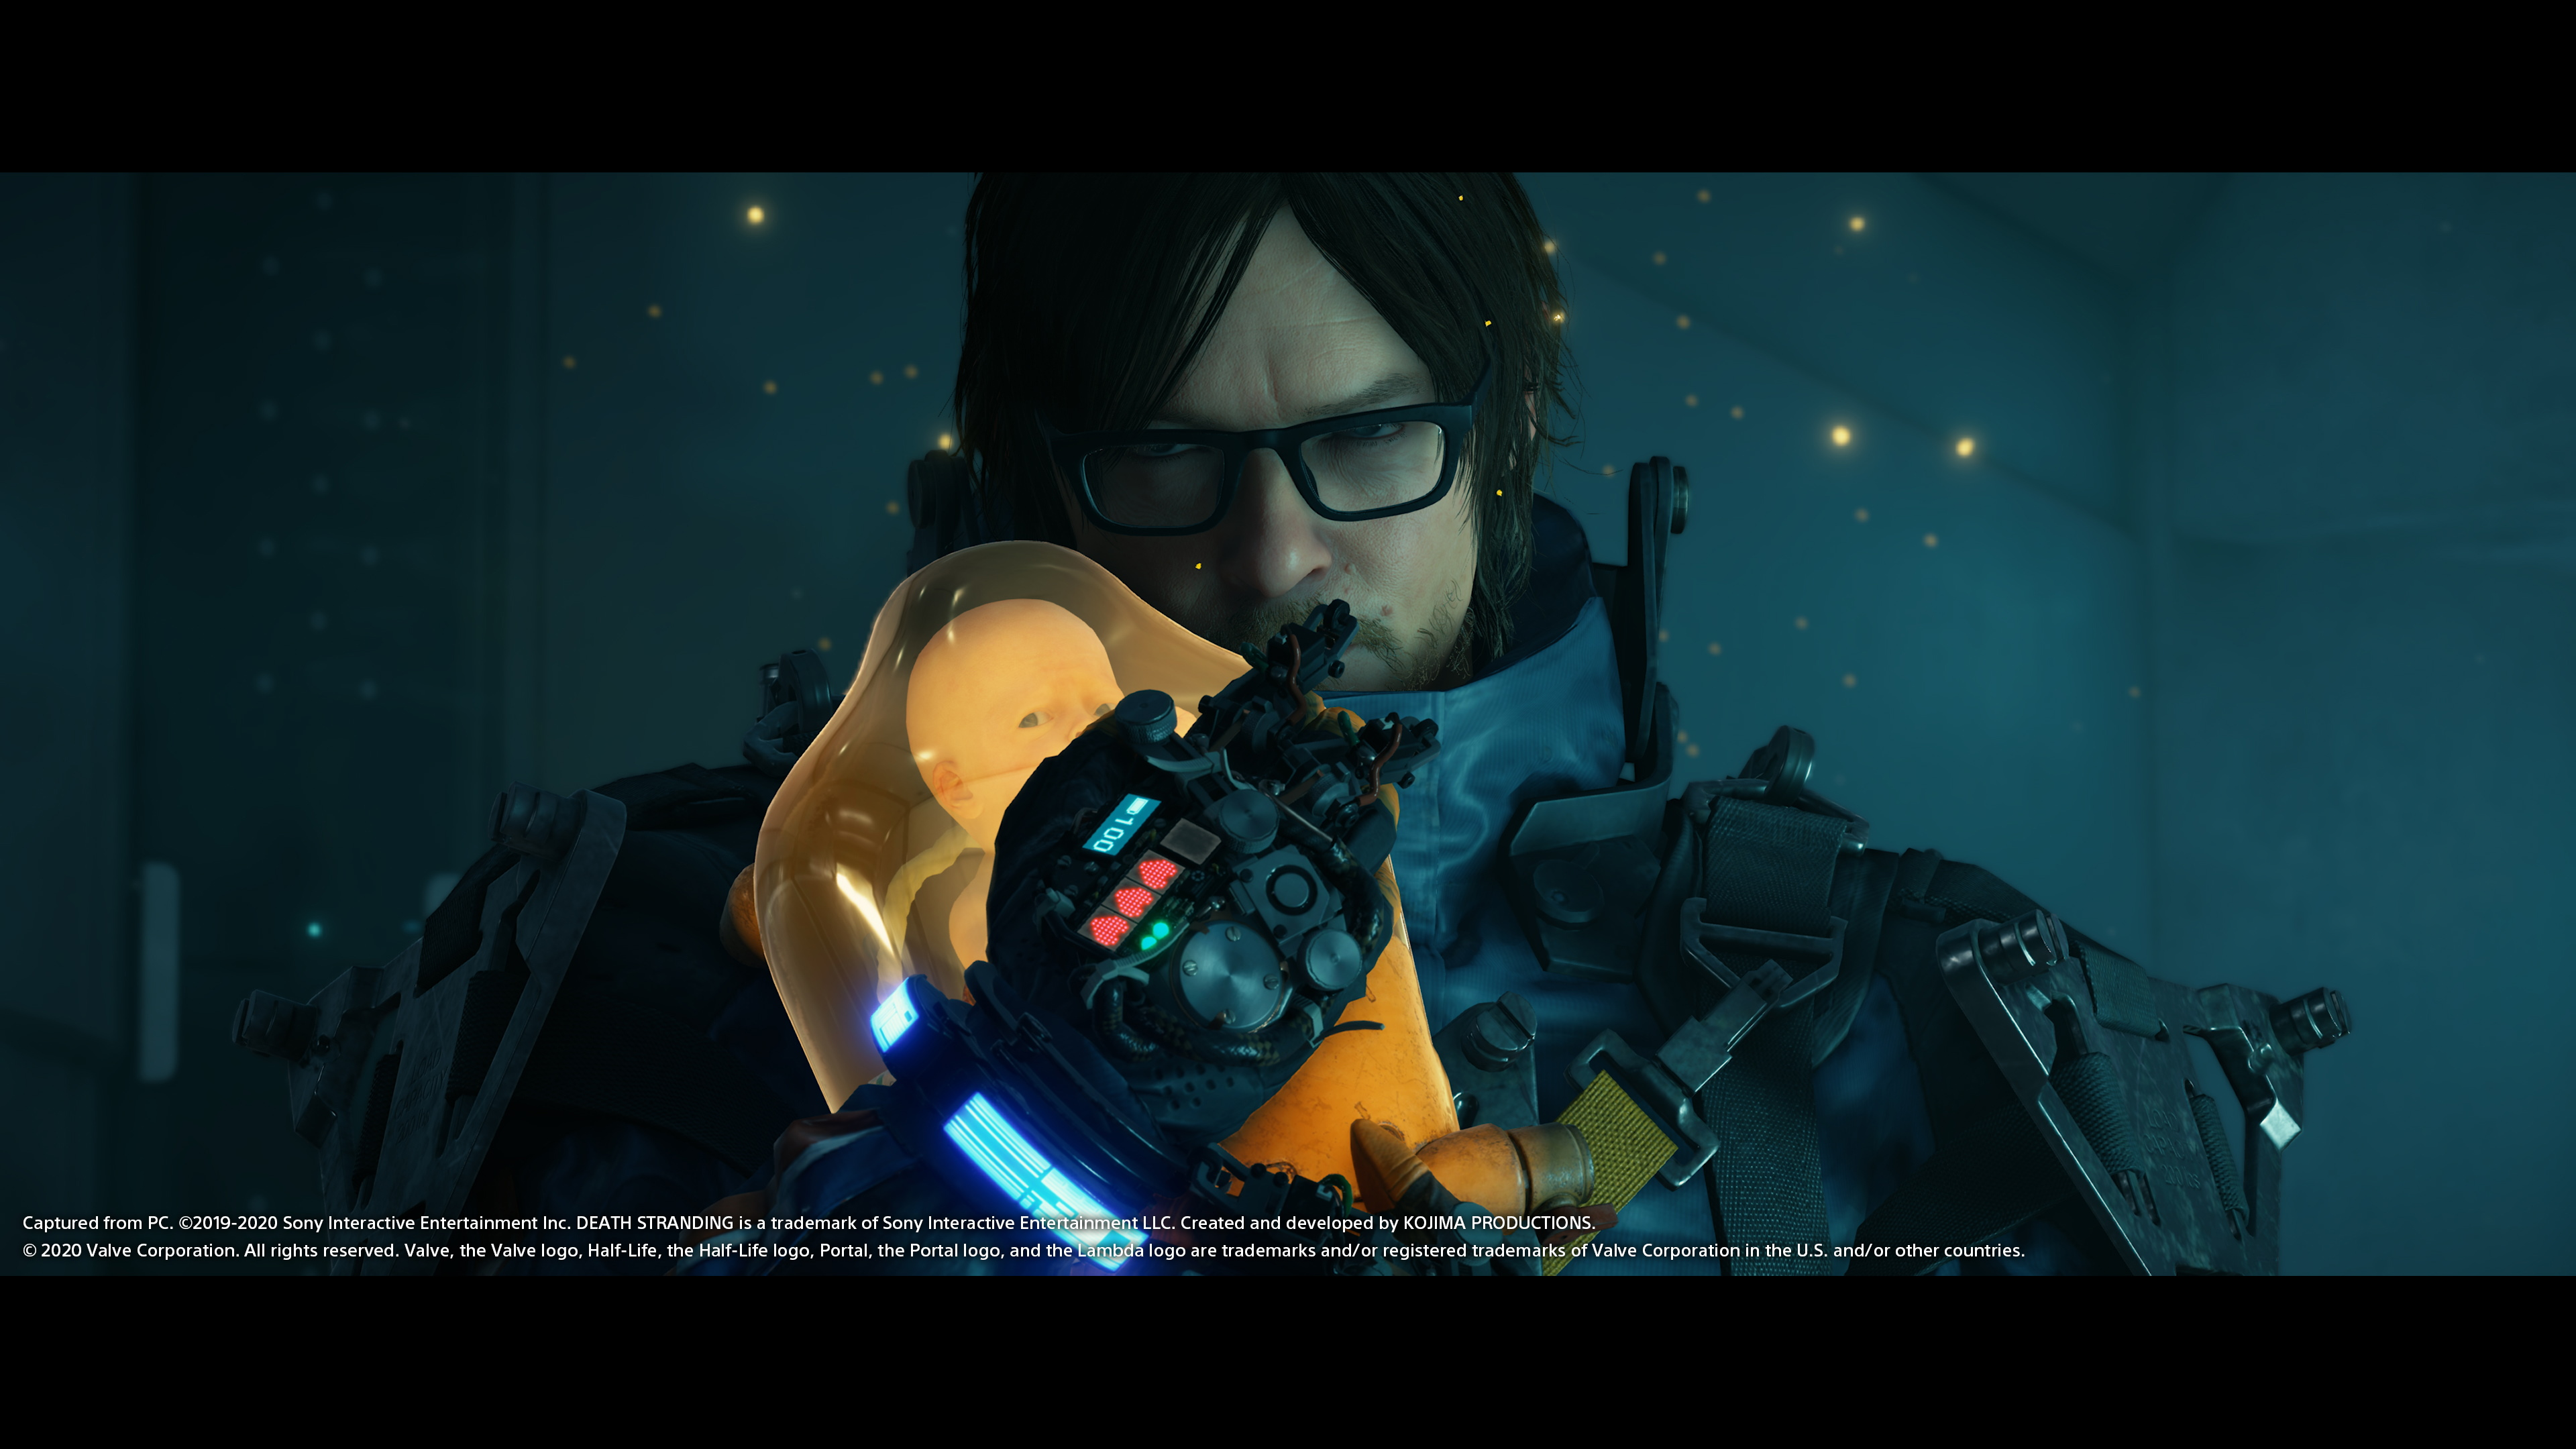 A screenshot from Death Stranding on PC